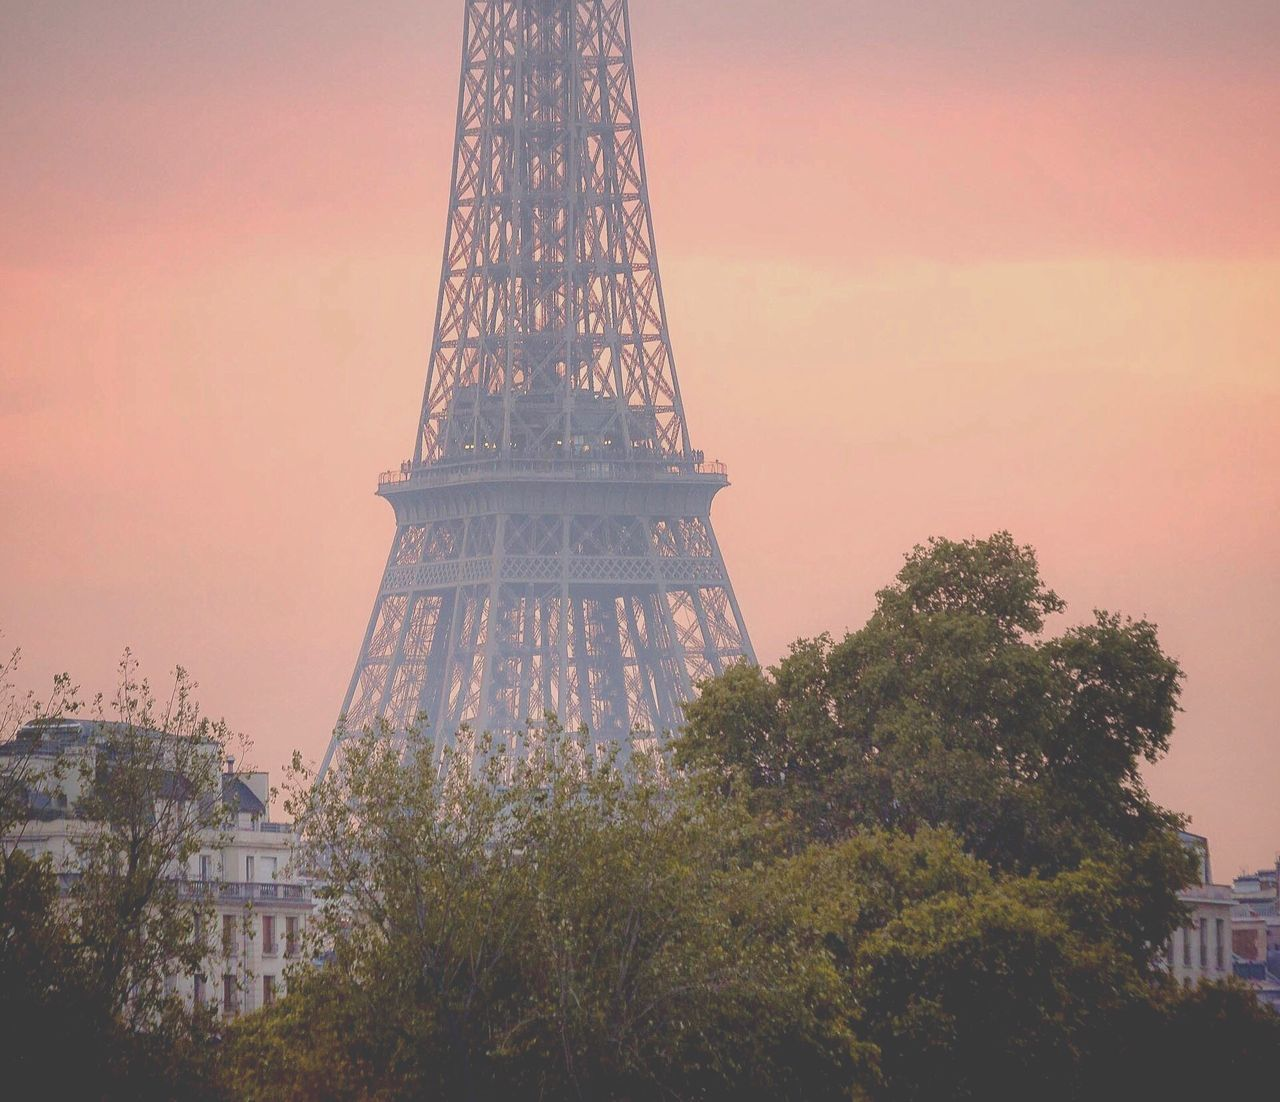 🤷🏼‍♂️ Architecture Tower Tree Sky Built Structure Sunset Cultures Travel Destinations Monument City Outdoors Building Exterior History No People Day Well Run City Life Eiffel Tower Love Applebie Paris, France  EyeEm Best Shots North To South Eiffel Car Trip